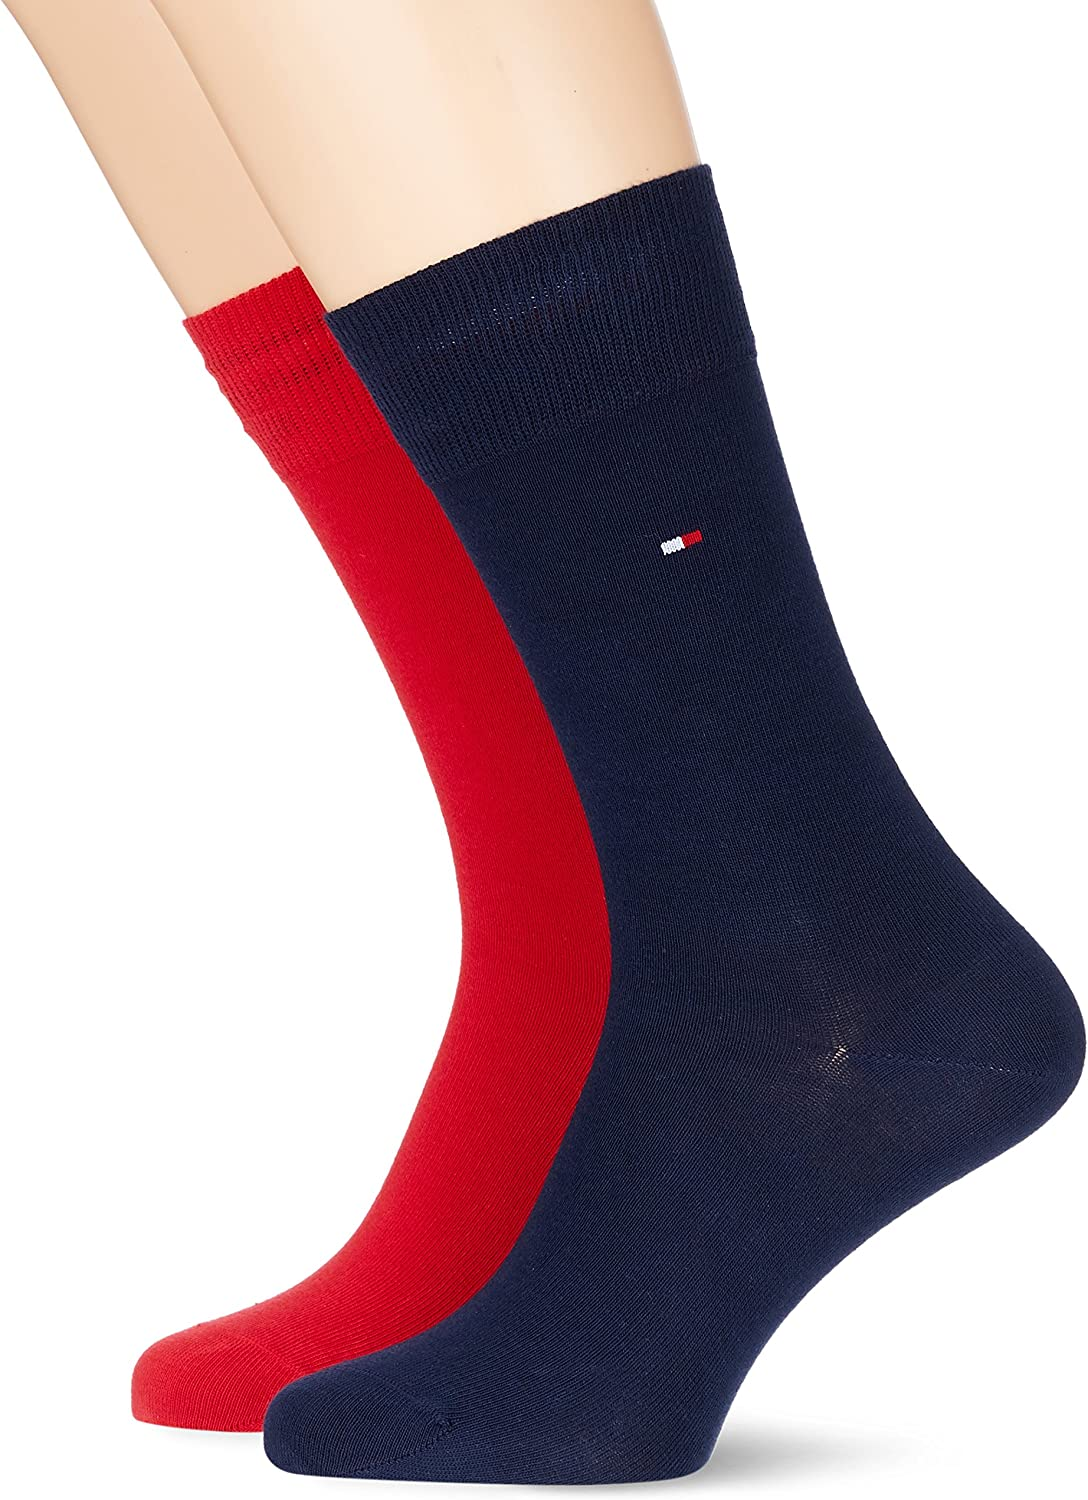 Tommy Hilfiger Calcetines Clasicas para Hombre